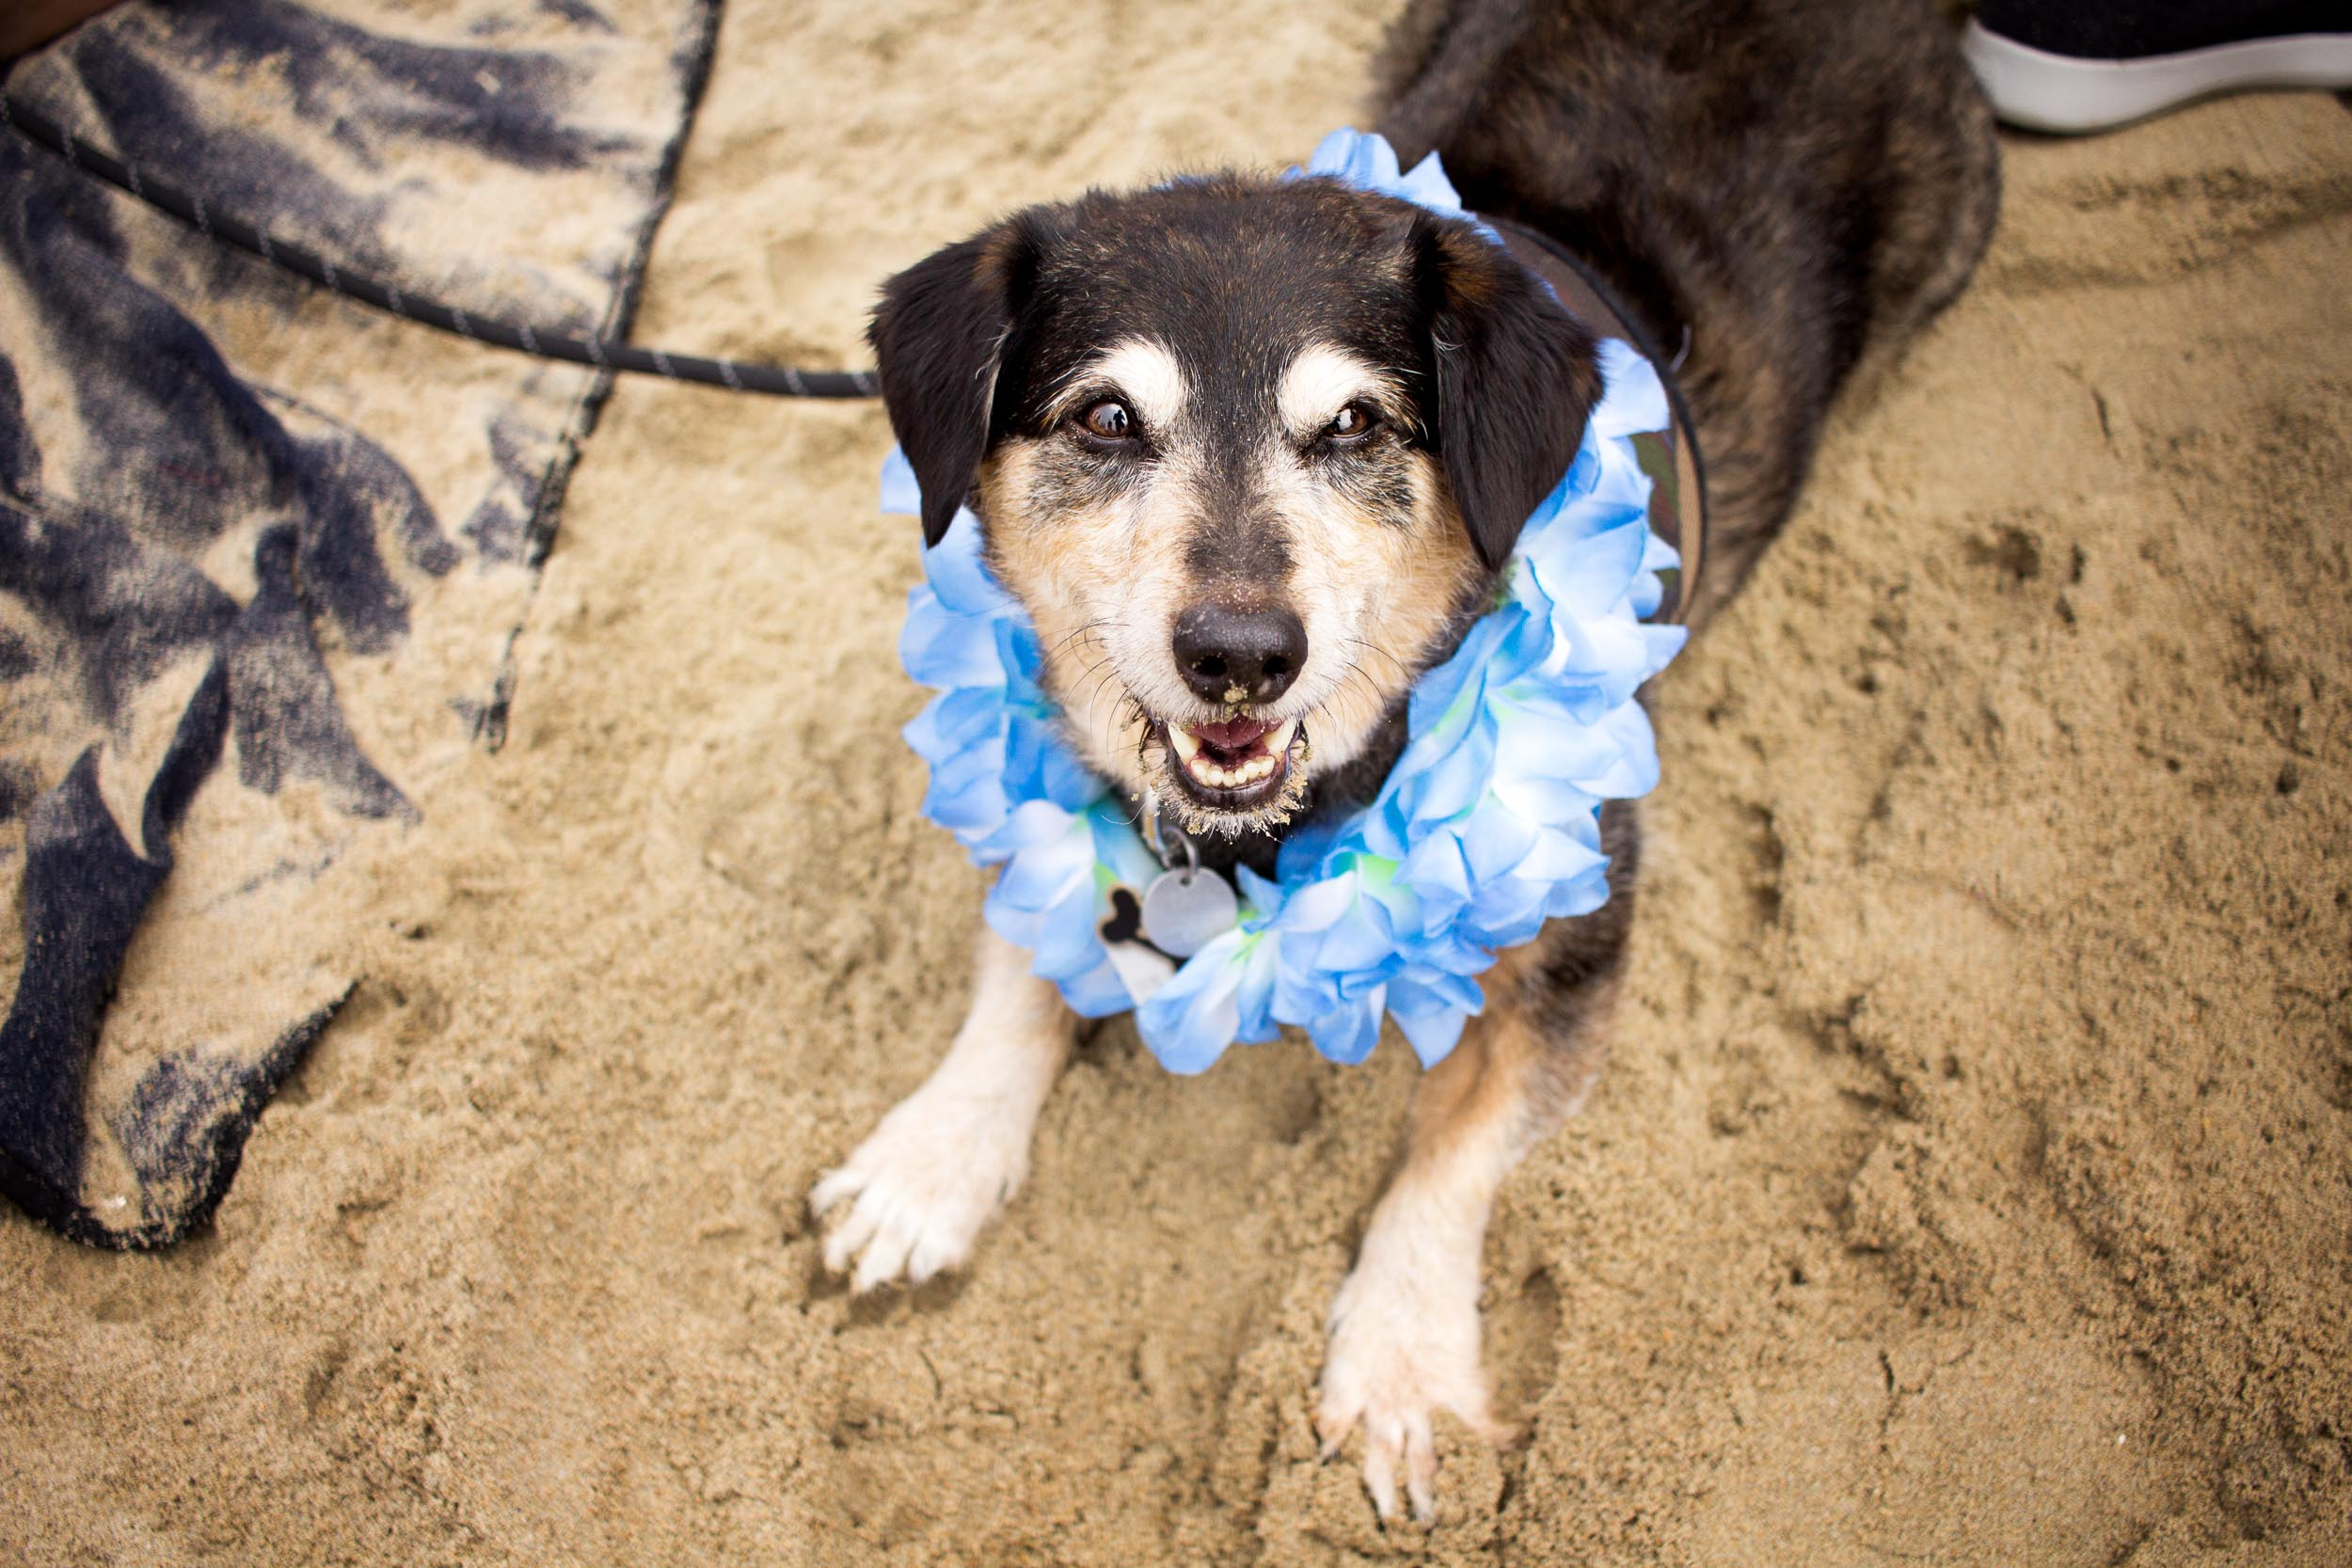 Orange-County-Dog-Photography-Pet-Huntington-Dog-Beach-SoCal-Corgi-Beach-Day_Steamer-Lee_029.JPG